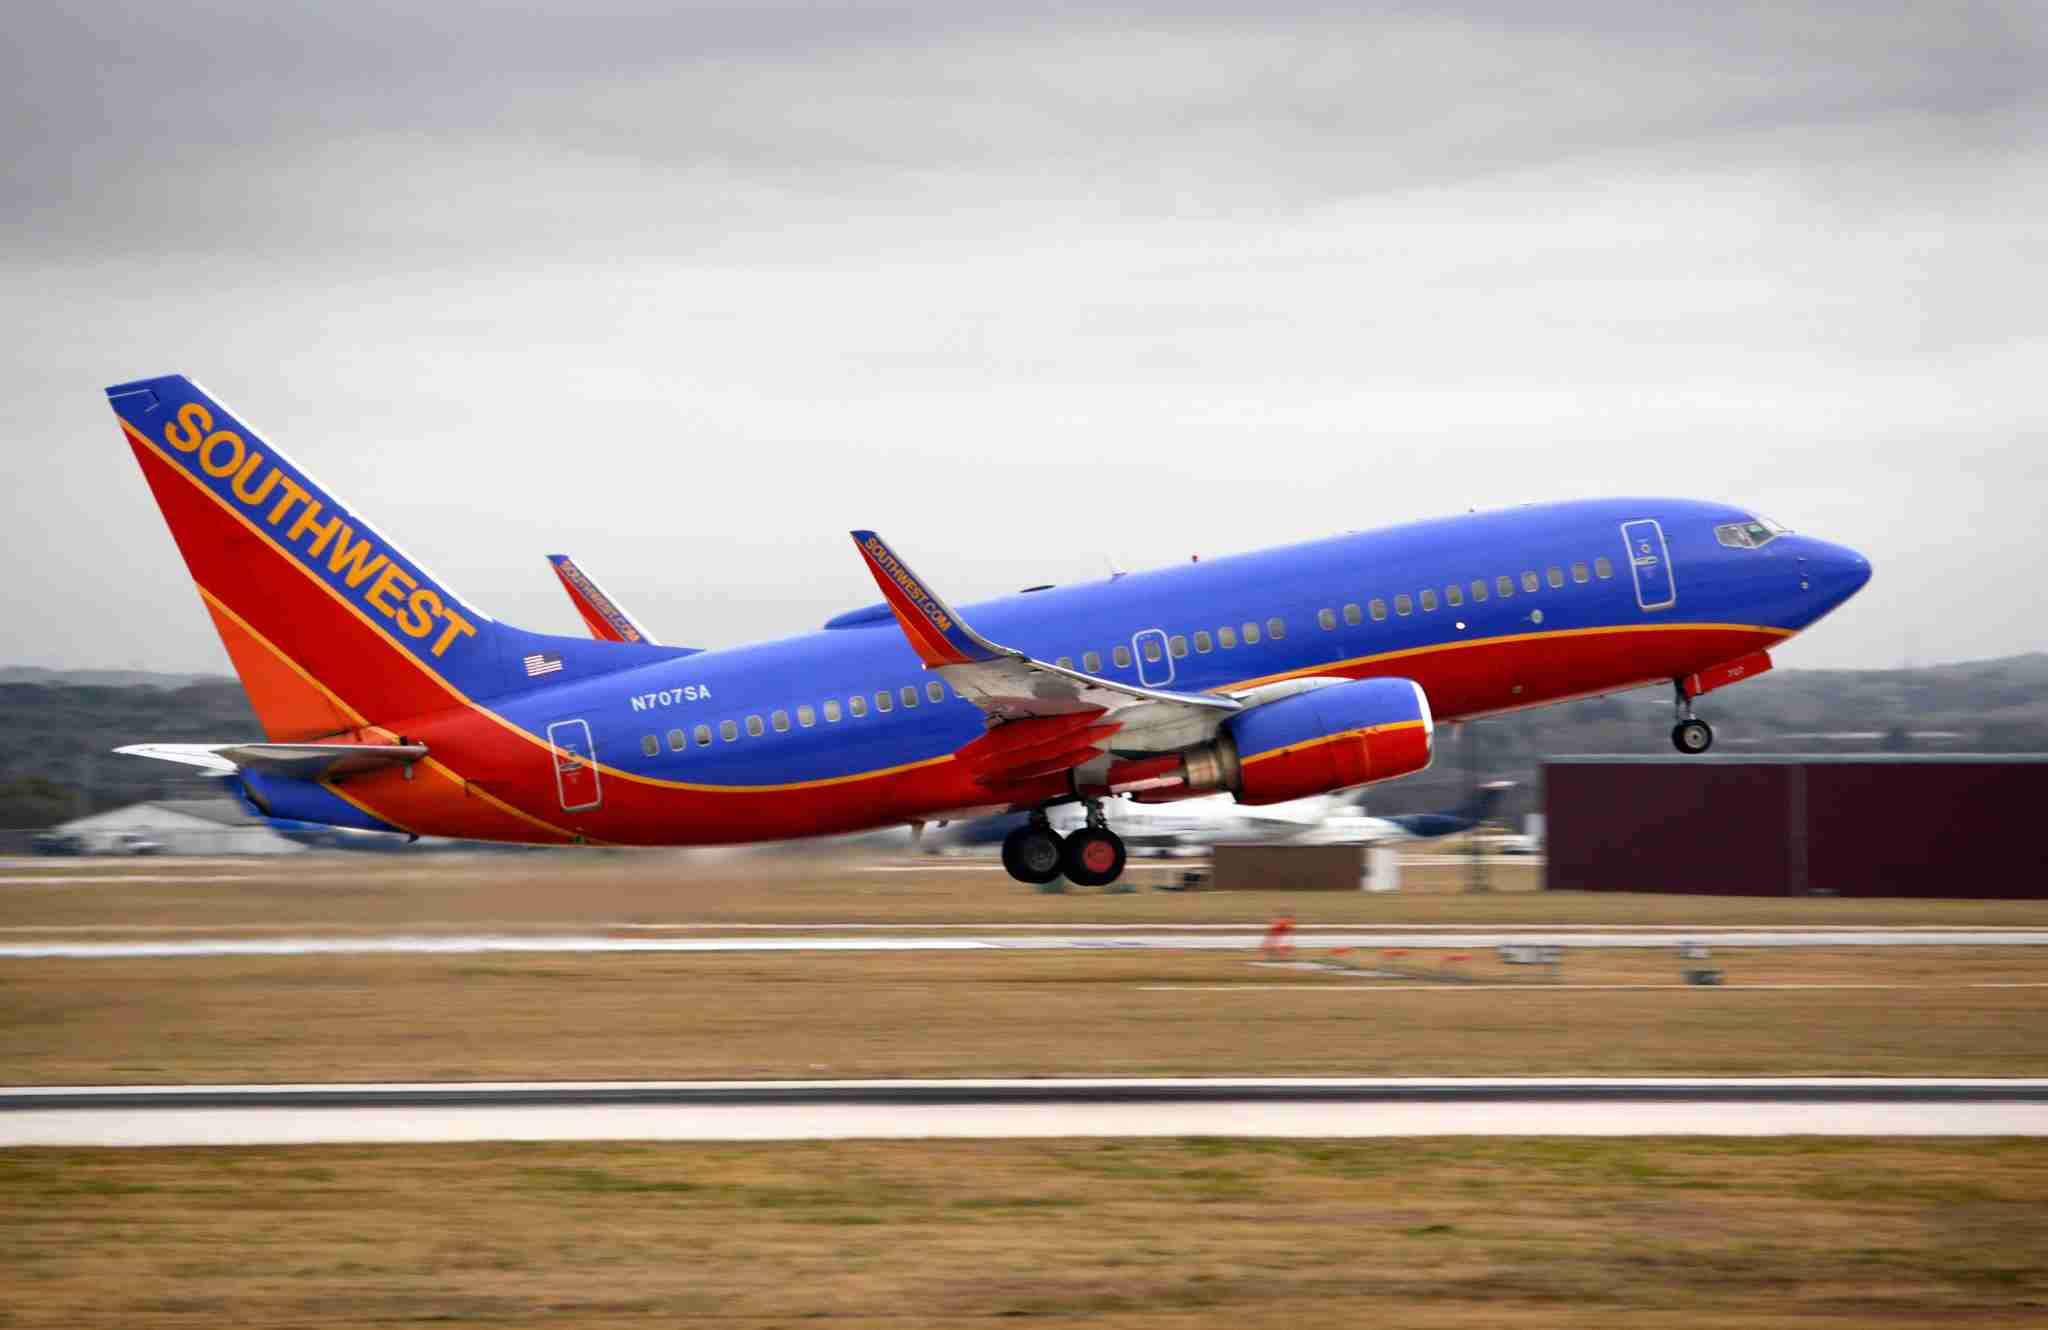 A Southwest Airlines Boeing 737 takes off from San Antonio International Airport. (Photo by Robert Alexander/Getty Images)